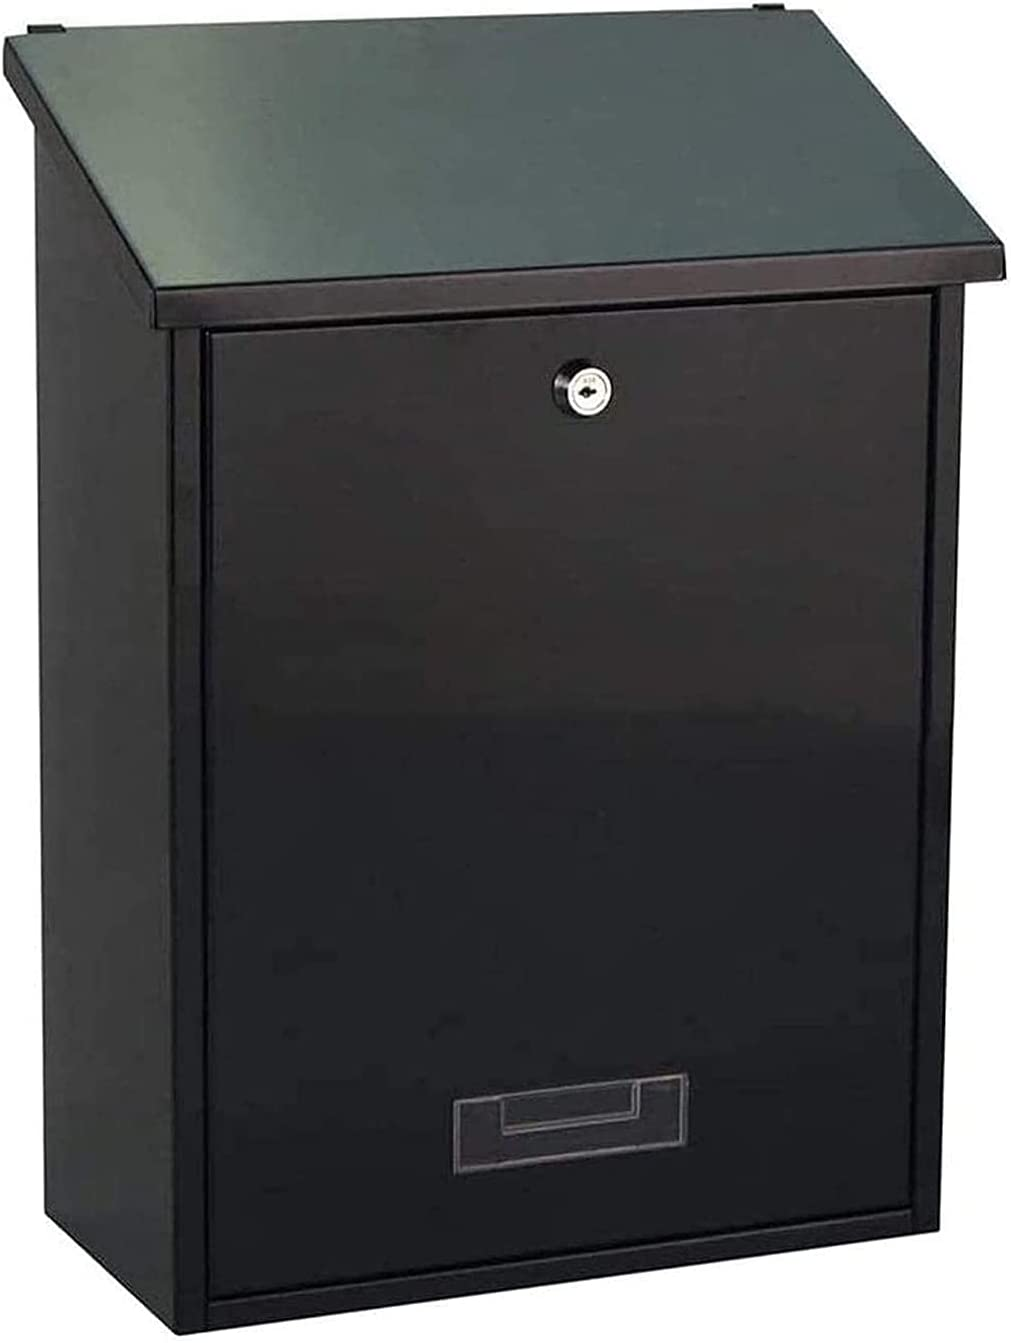 SSHA Outside Post Boxes Locka Wall-Mounted Mailboxes Super beauty product restock quality top for Outlet sale feature